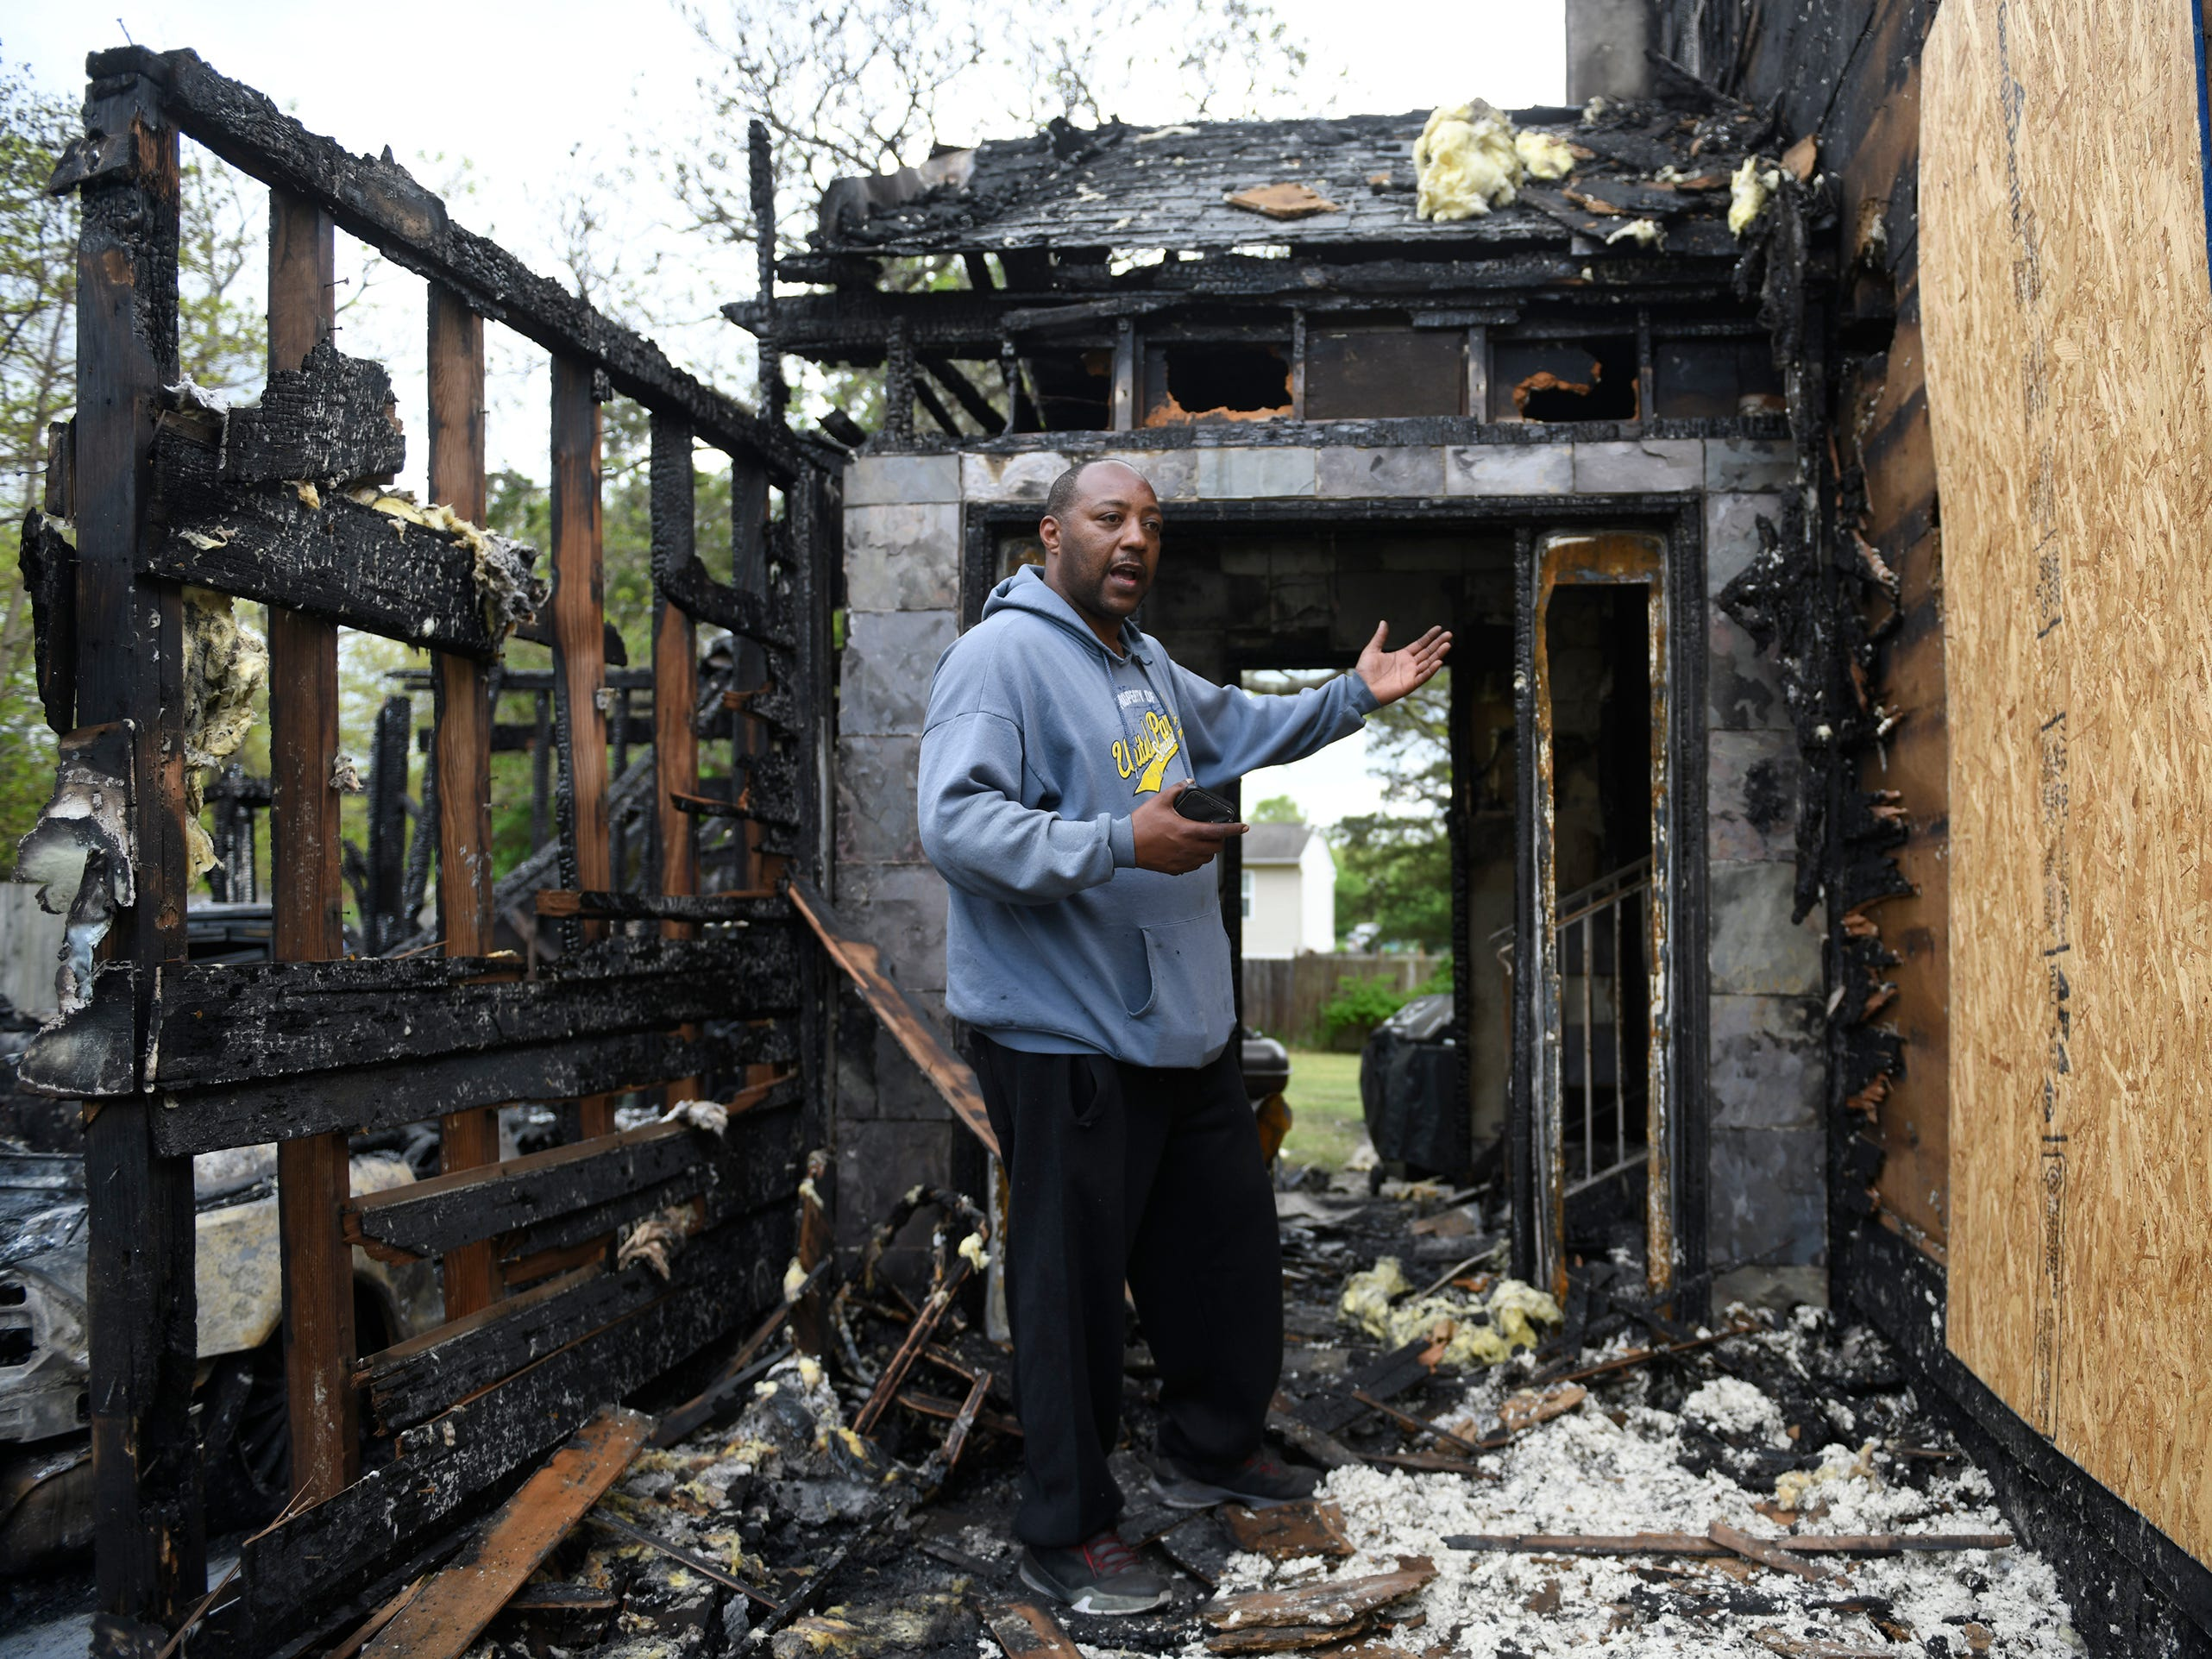 Anthony Rios stands in front of his charred home in Vineland following a fire on Monday, May 6, 2019. Rios says his Ring video doorbell system saved his life by alerting his family that there was a fire.